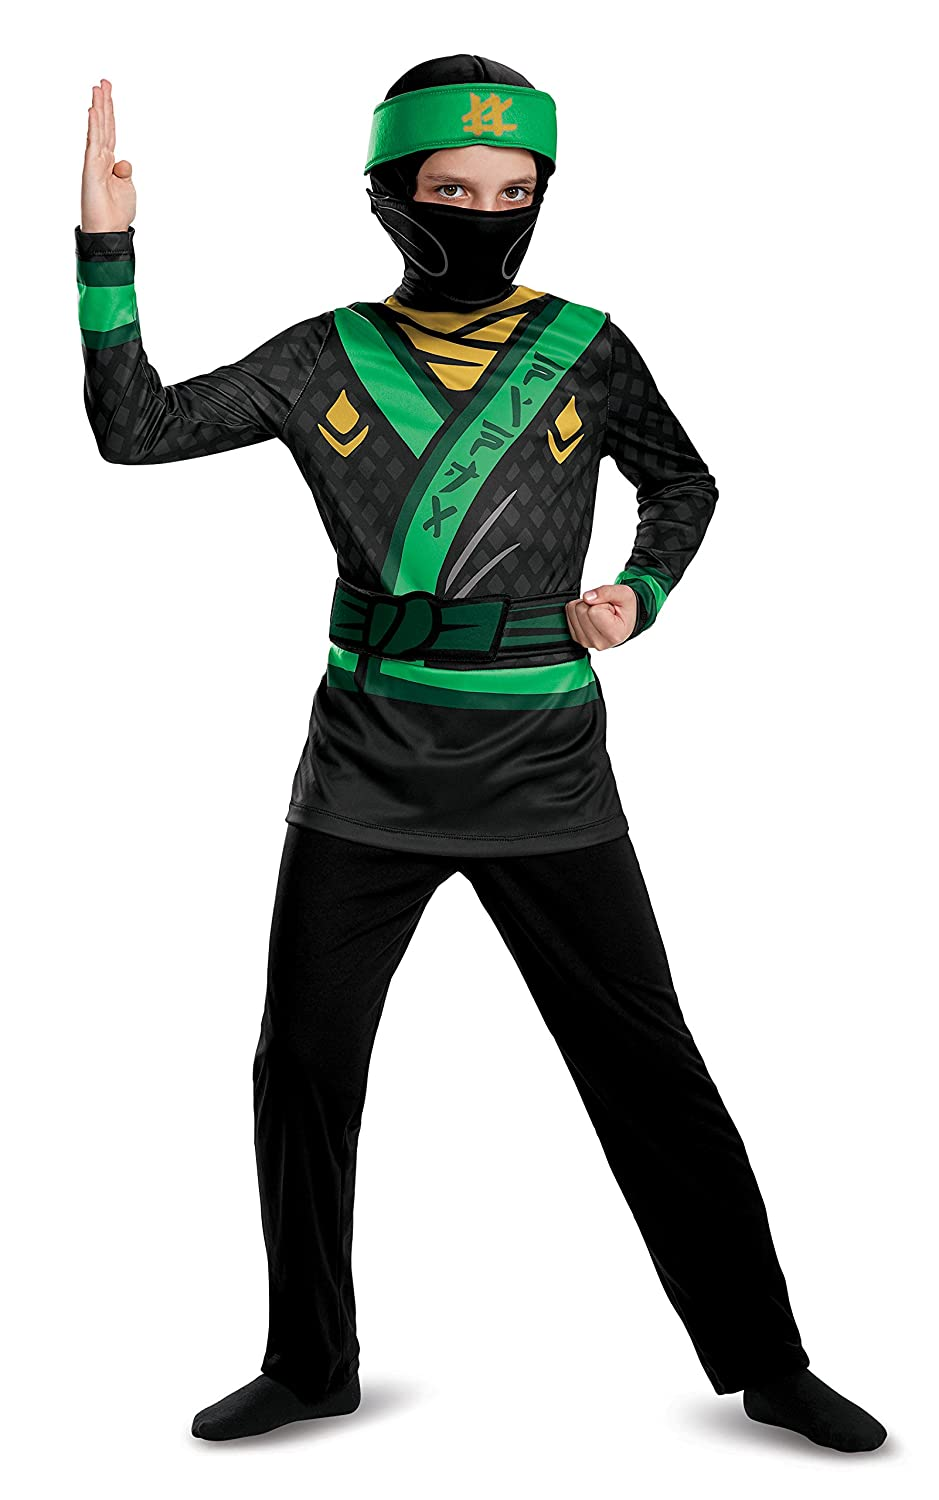 Amazon.com: Boys Lloyd Ninjago Costume Small 4-6: Toys & Games